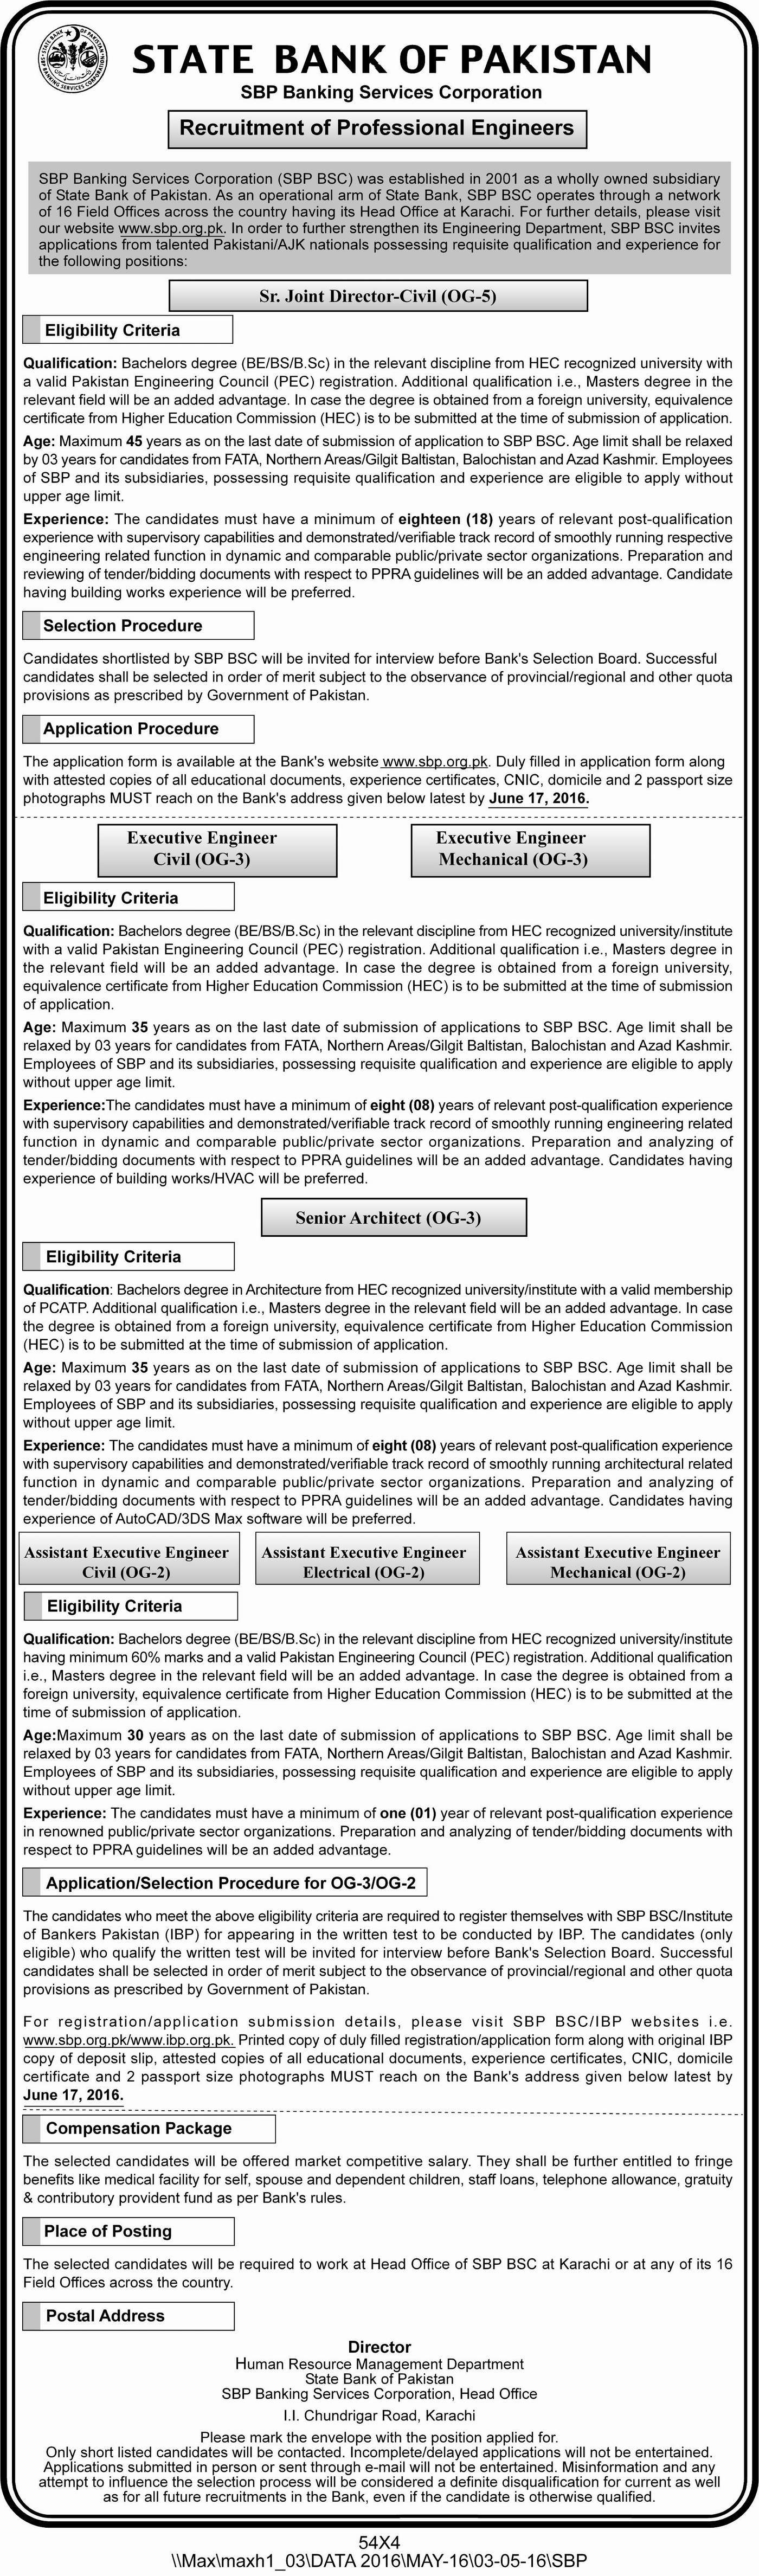 State Bank of Pakistan Jobs 2016